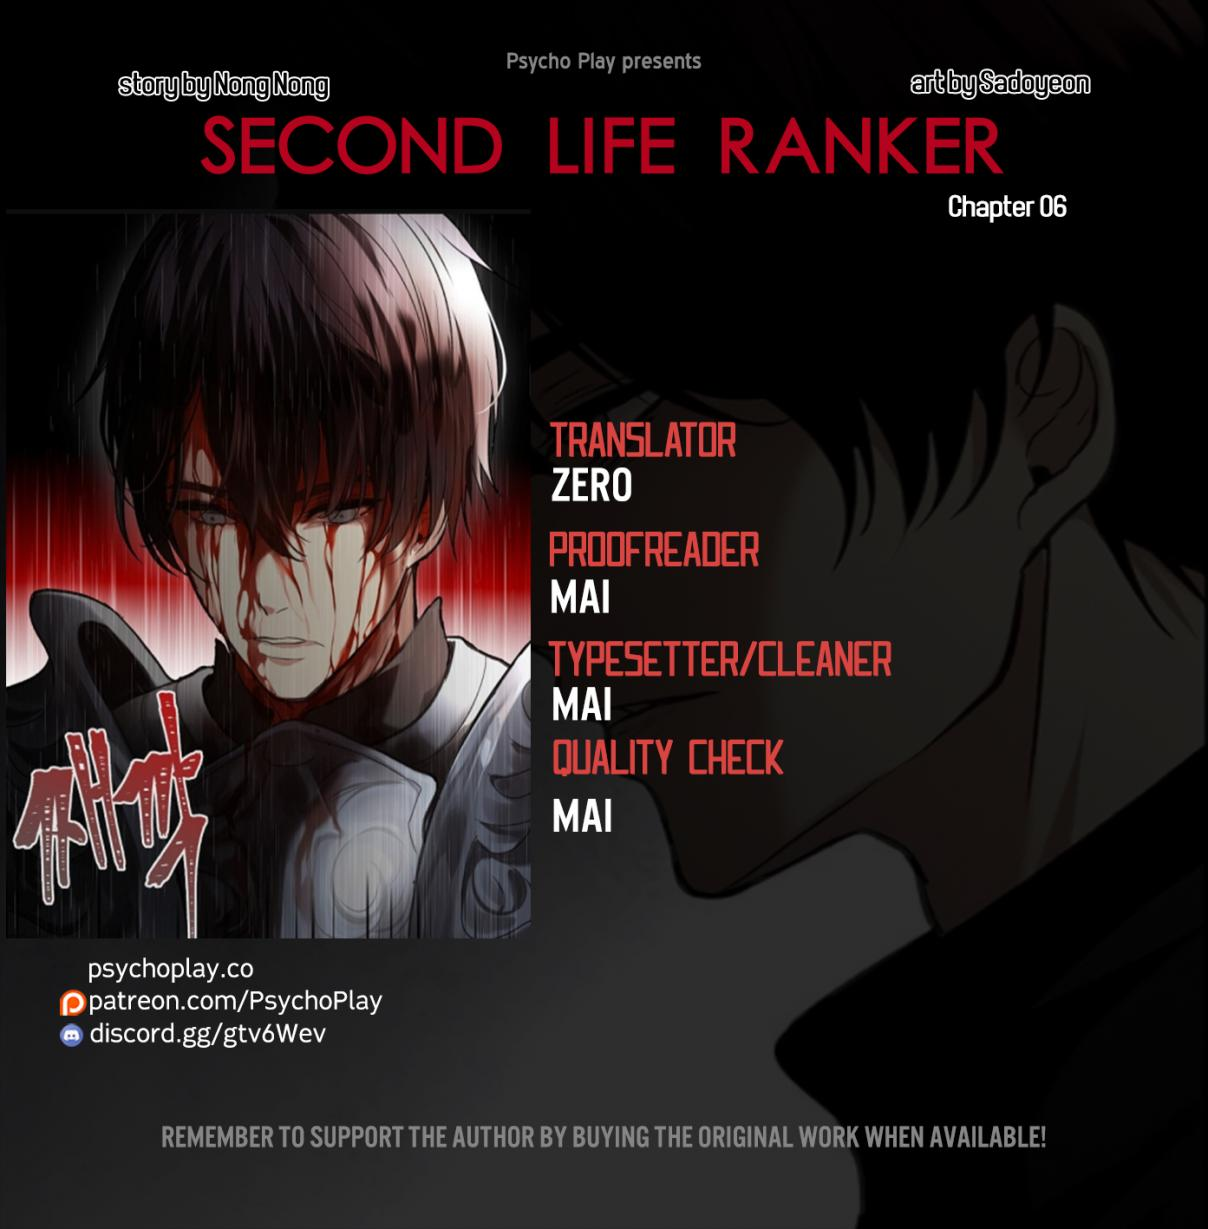 Second Life Ranker Ch. 6